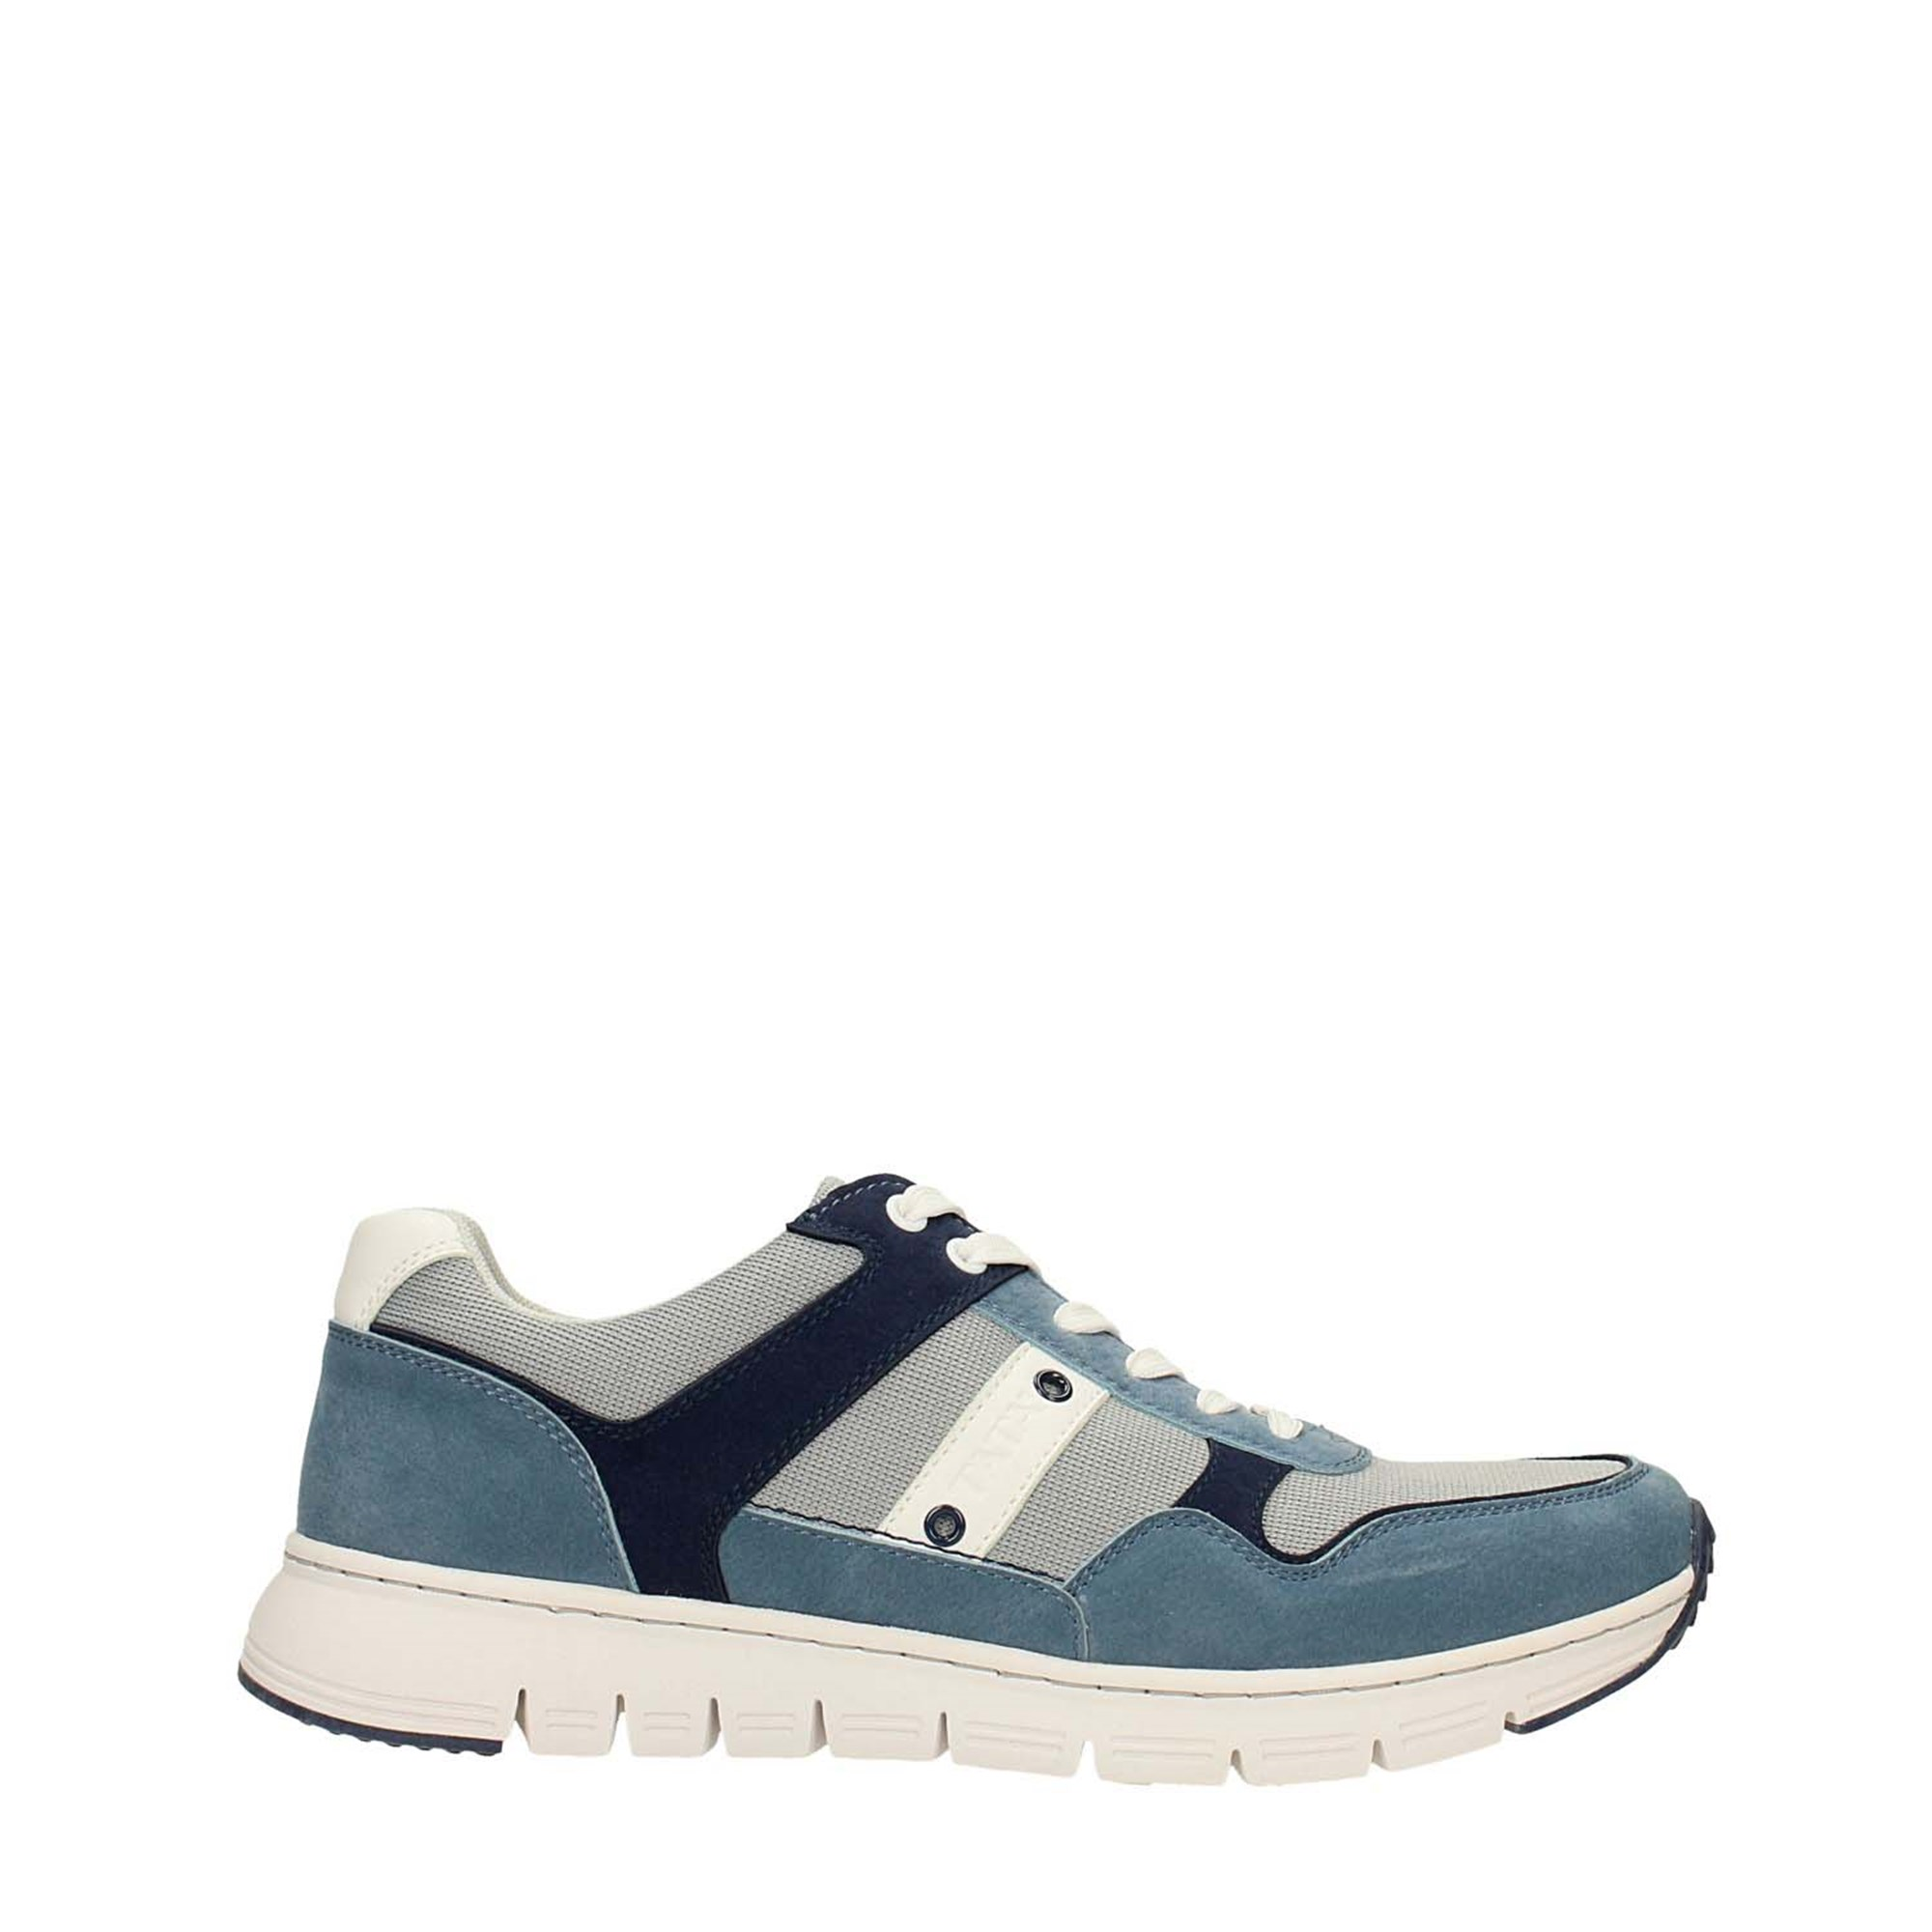 Tata Italia Shoes Man Sneakers 904079